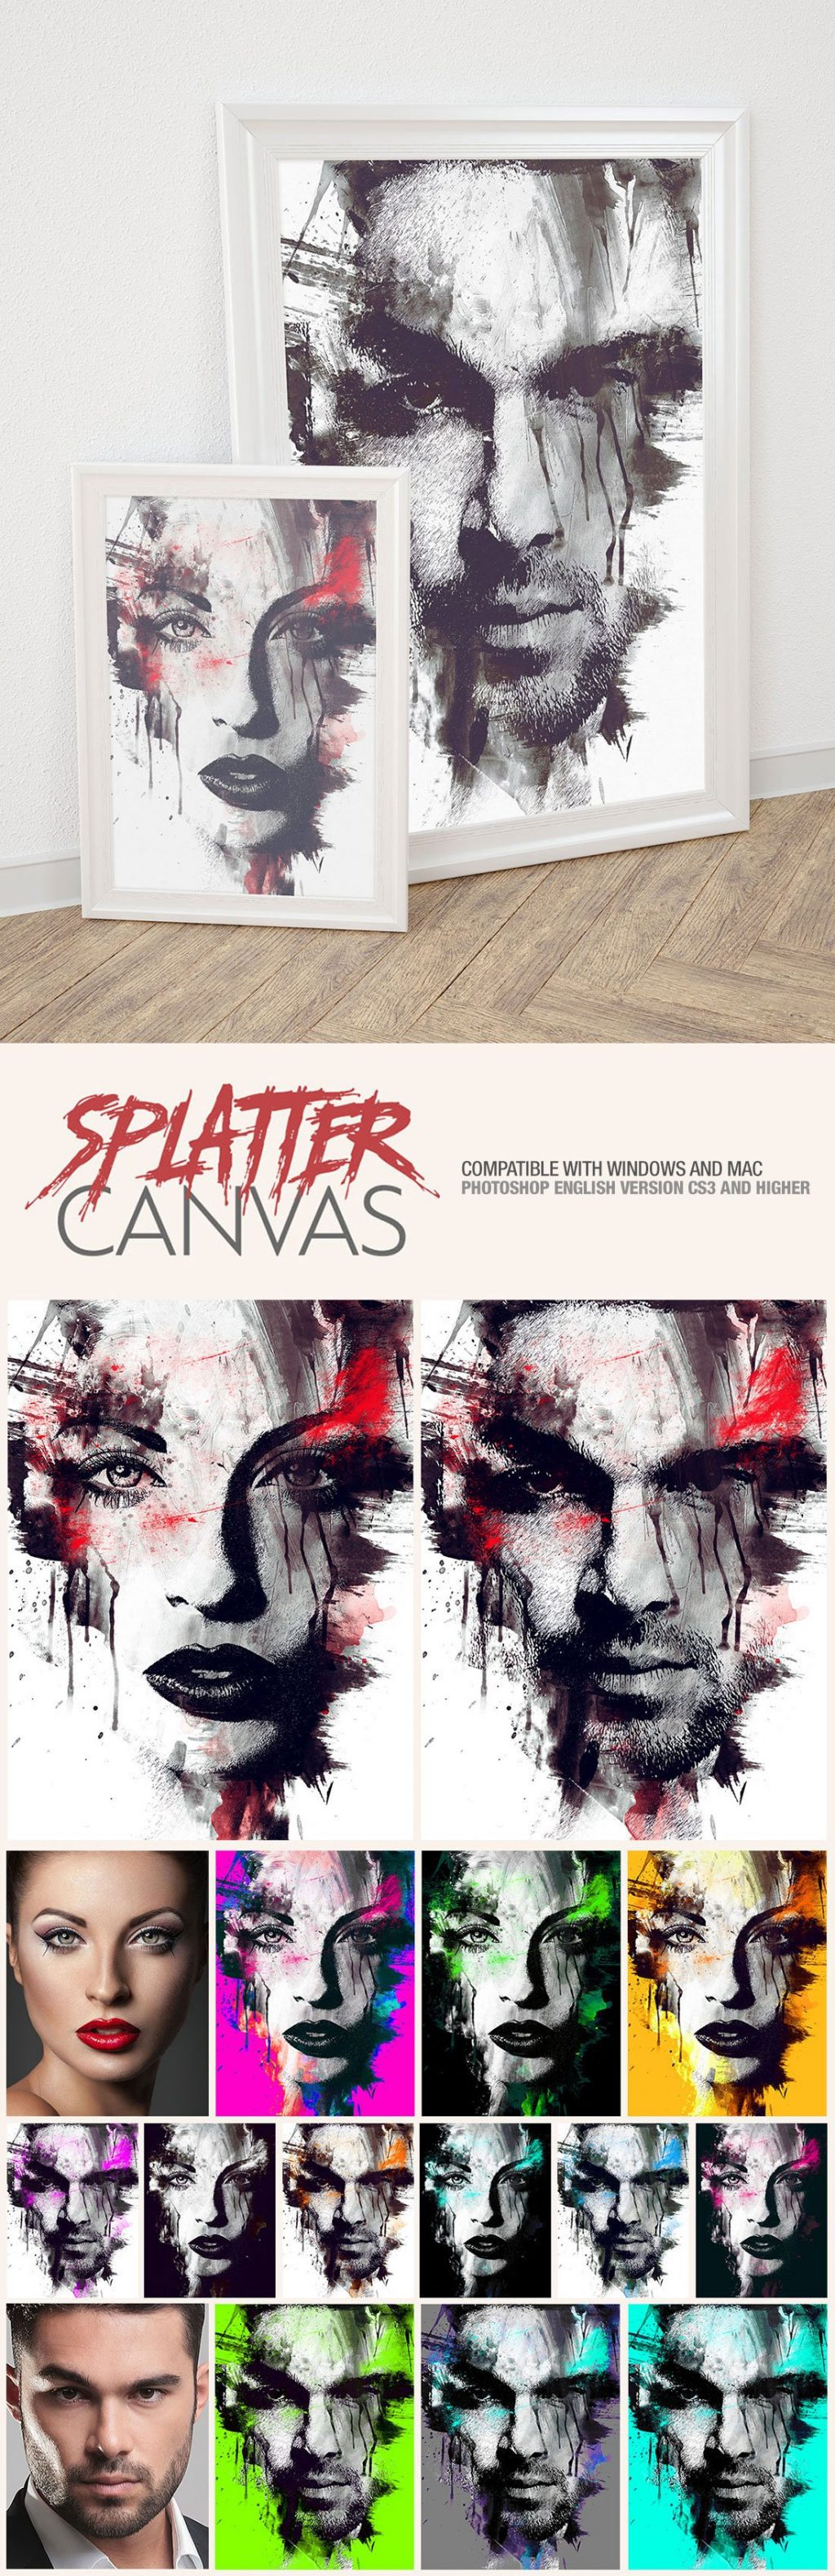 Photoshop Actions & Templates: Artistic Photo FX Bundle - splatter canvas photo template design by amorjesu 2